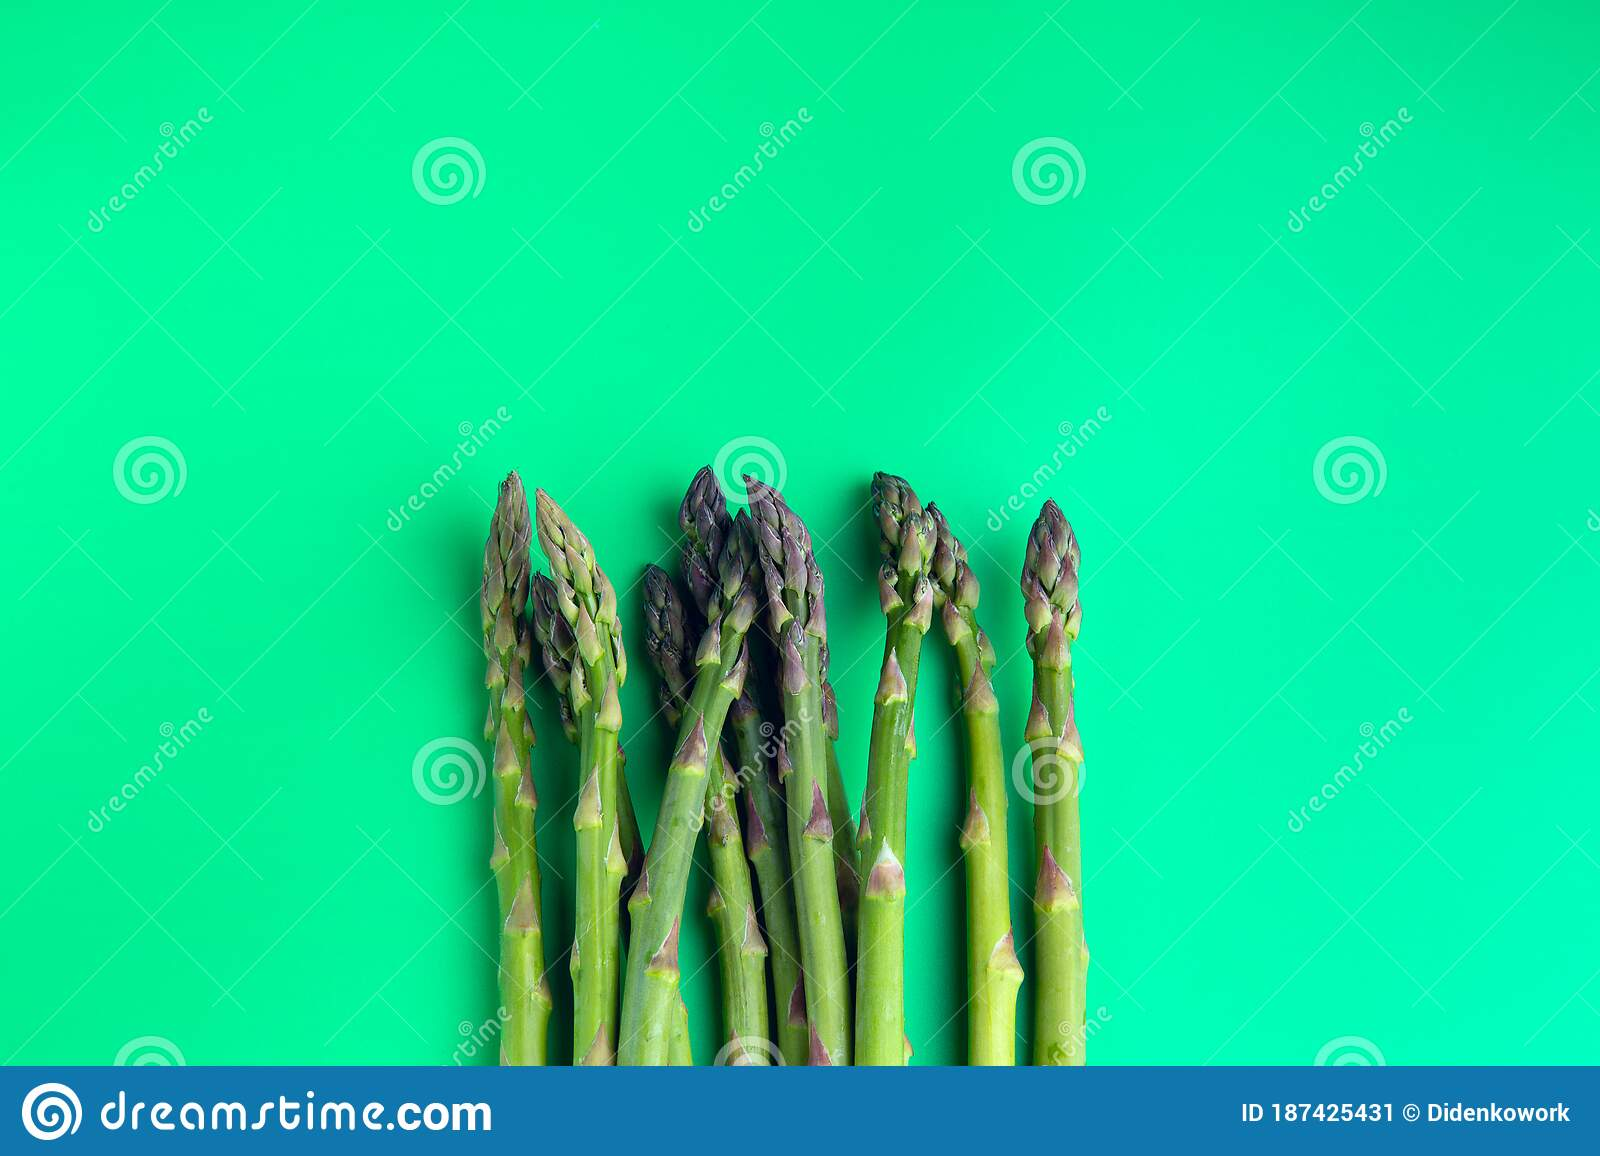 Asparagus On A Plain Green Background Stock Image Image Of Salad Cook 187425431